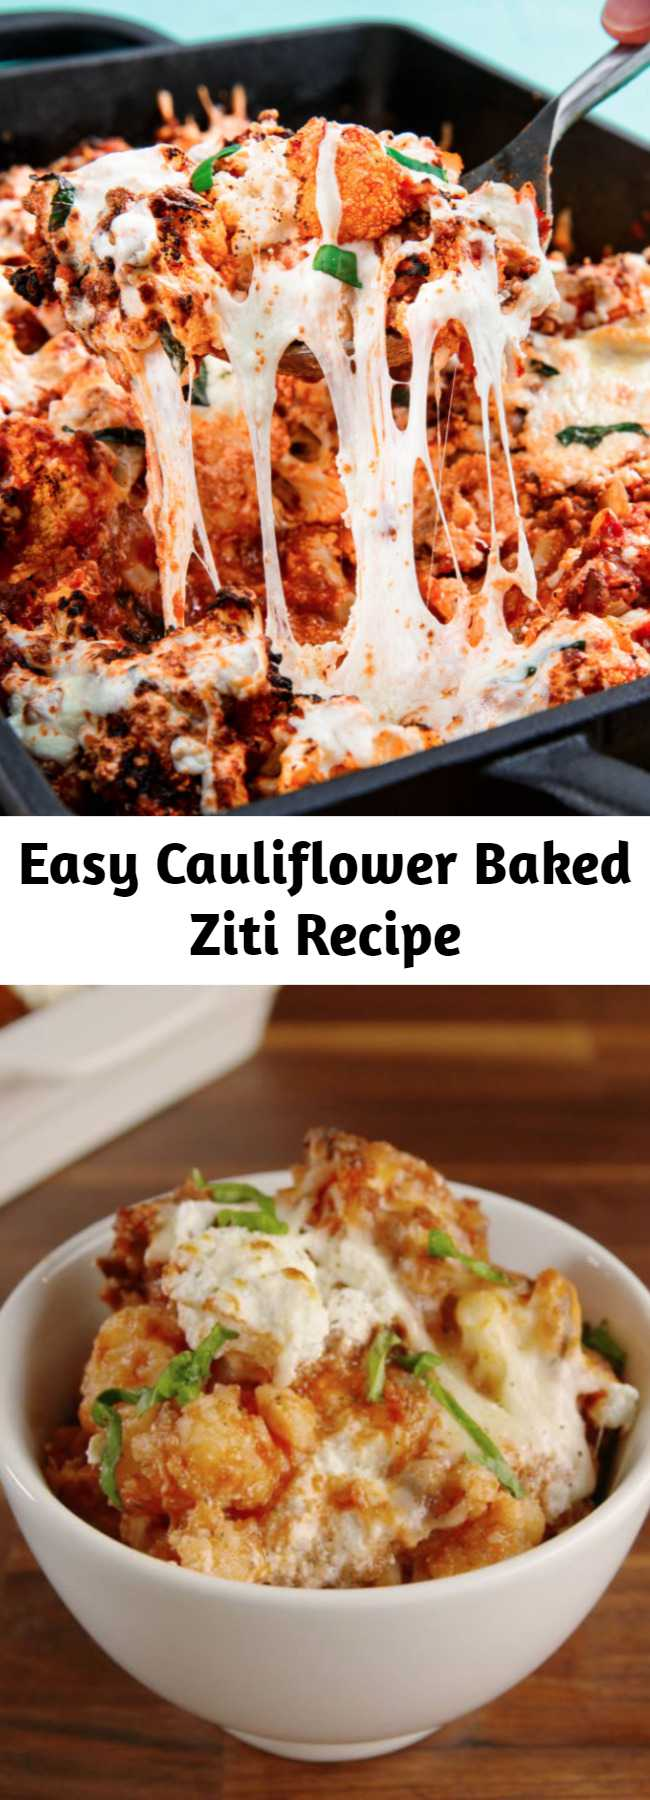 Easy Cauliflower Baked Ziti Recipe - There's not actually any ziti in this recipe. But you honestly won't even notice. The blanched cauliflower does a fine job of replacing the pasta. Just make sure to drain it well before tossing it with the sauce. #easy #recipe #cauliflower #healthy #lowcarb #baked #ziti #ricotta #cheese #diet #filling #hearty